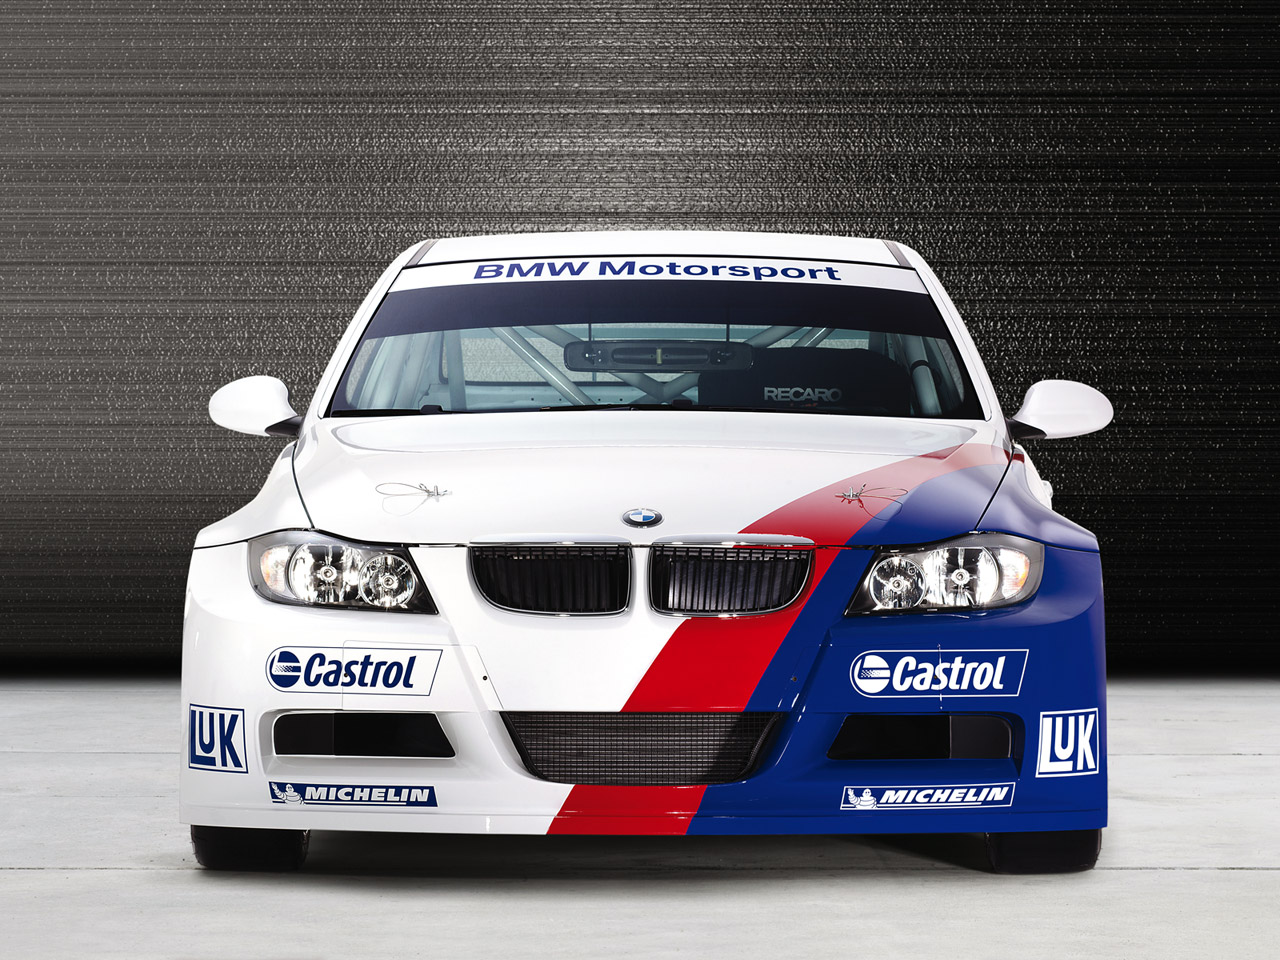 Bmw Photo Gallery 10785 High Quality Bmw Pictures